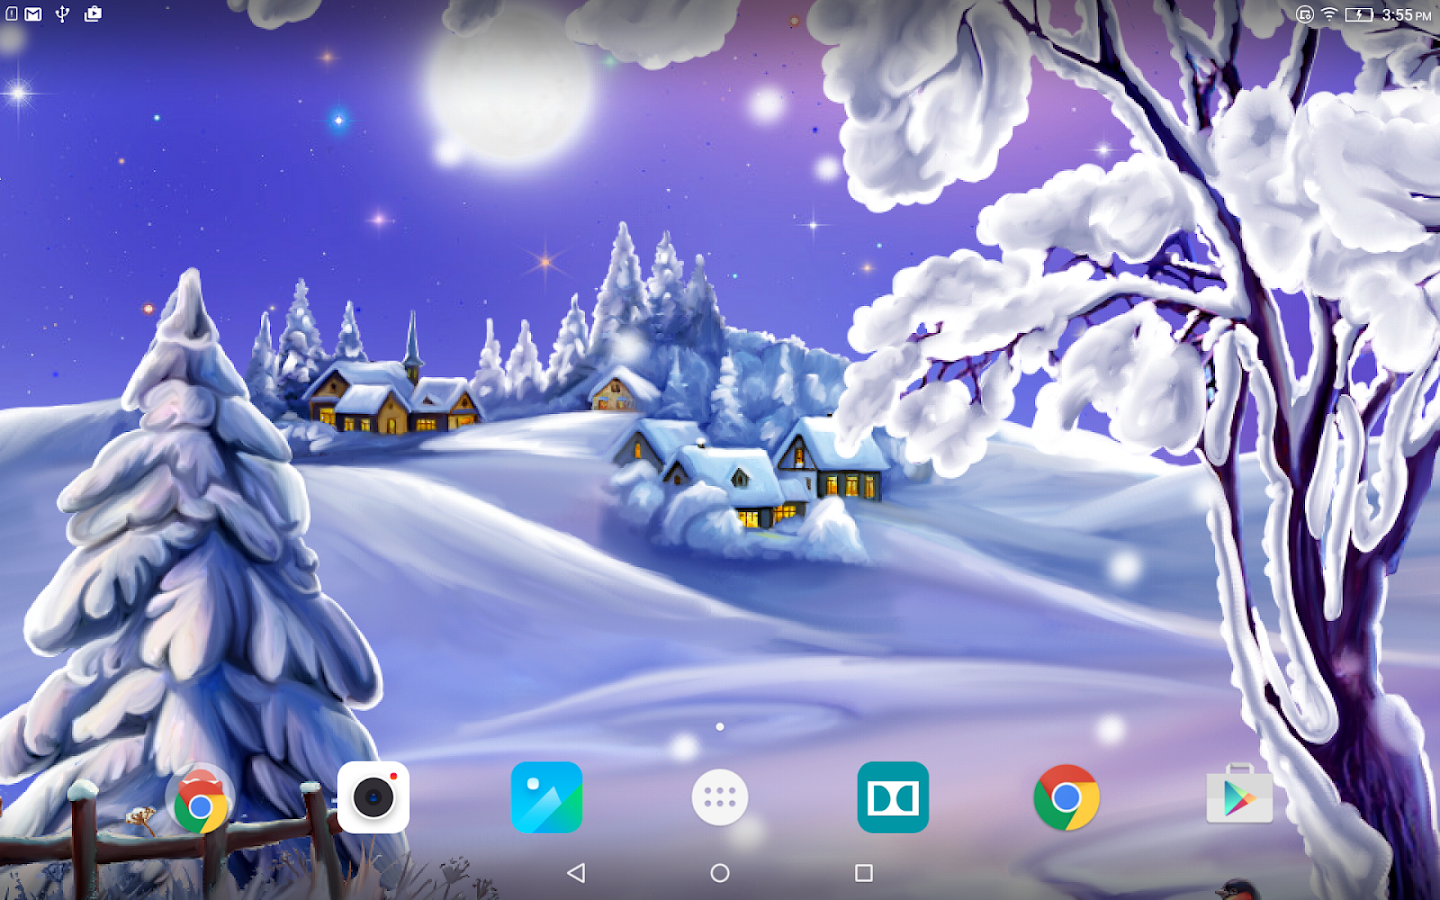 Success Citaten Apk : Citaten winter apk night live wallpaper